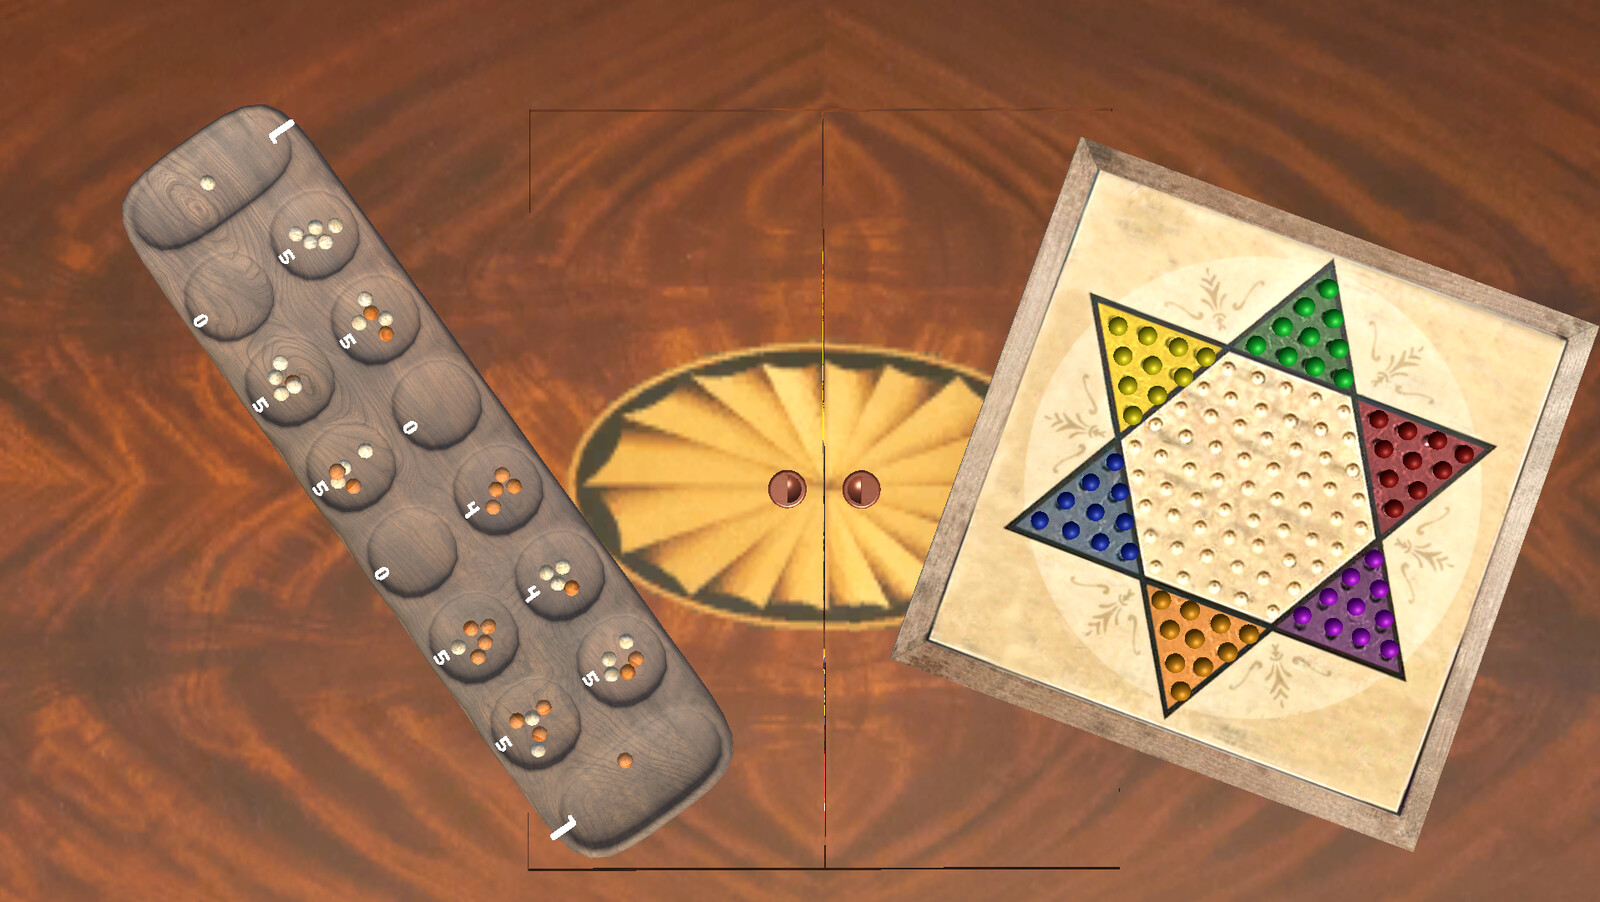 This is a game table where the visitor has the chance to play Mancala or Chinese Checkers with another player. If they happen to tap on the secret doors they'll also get instructions to other games in the room.